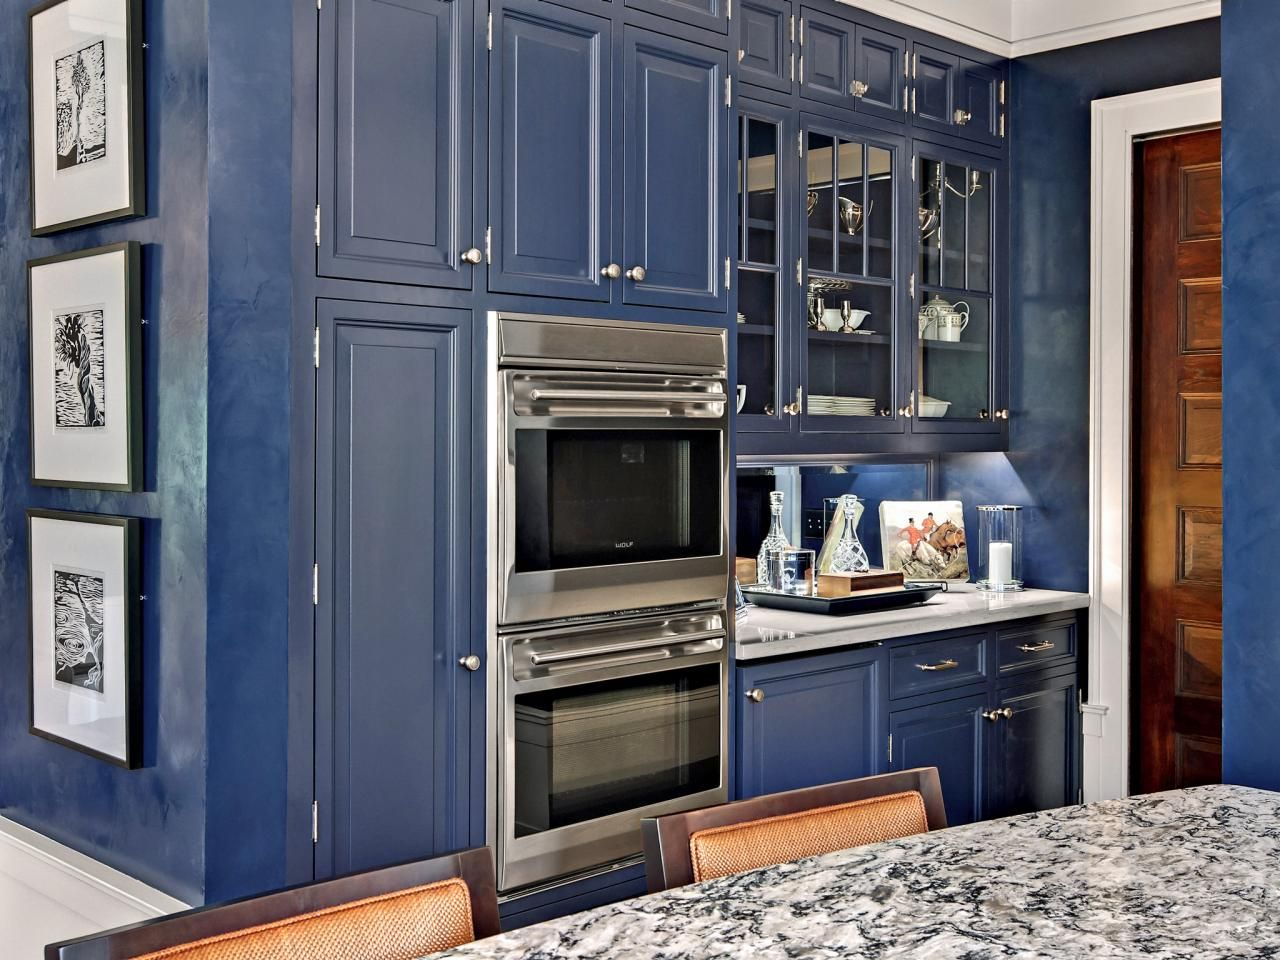 Best colors to paint a kitchen pictures ideas from navy cabinets warm colors and design Help design kitchen colors